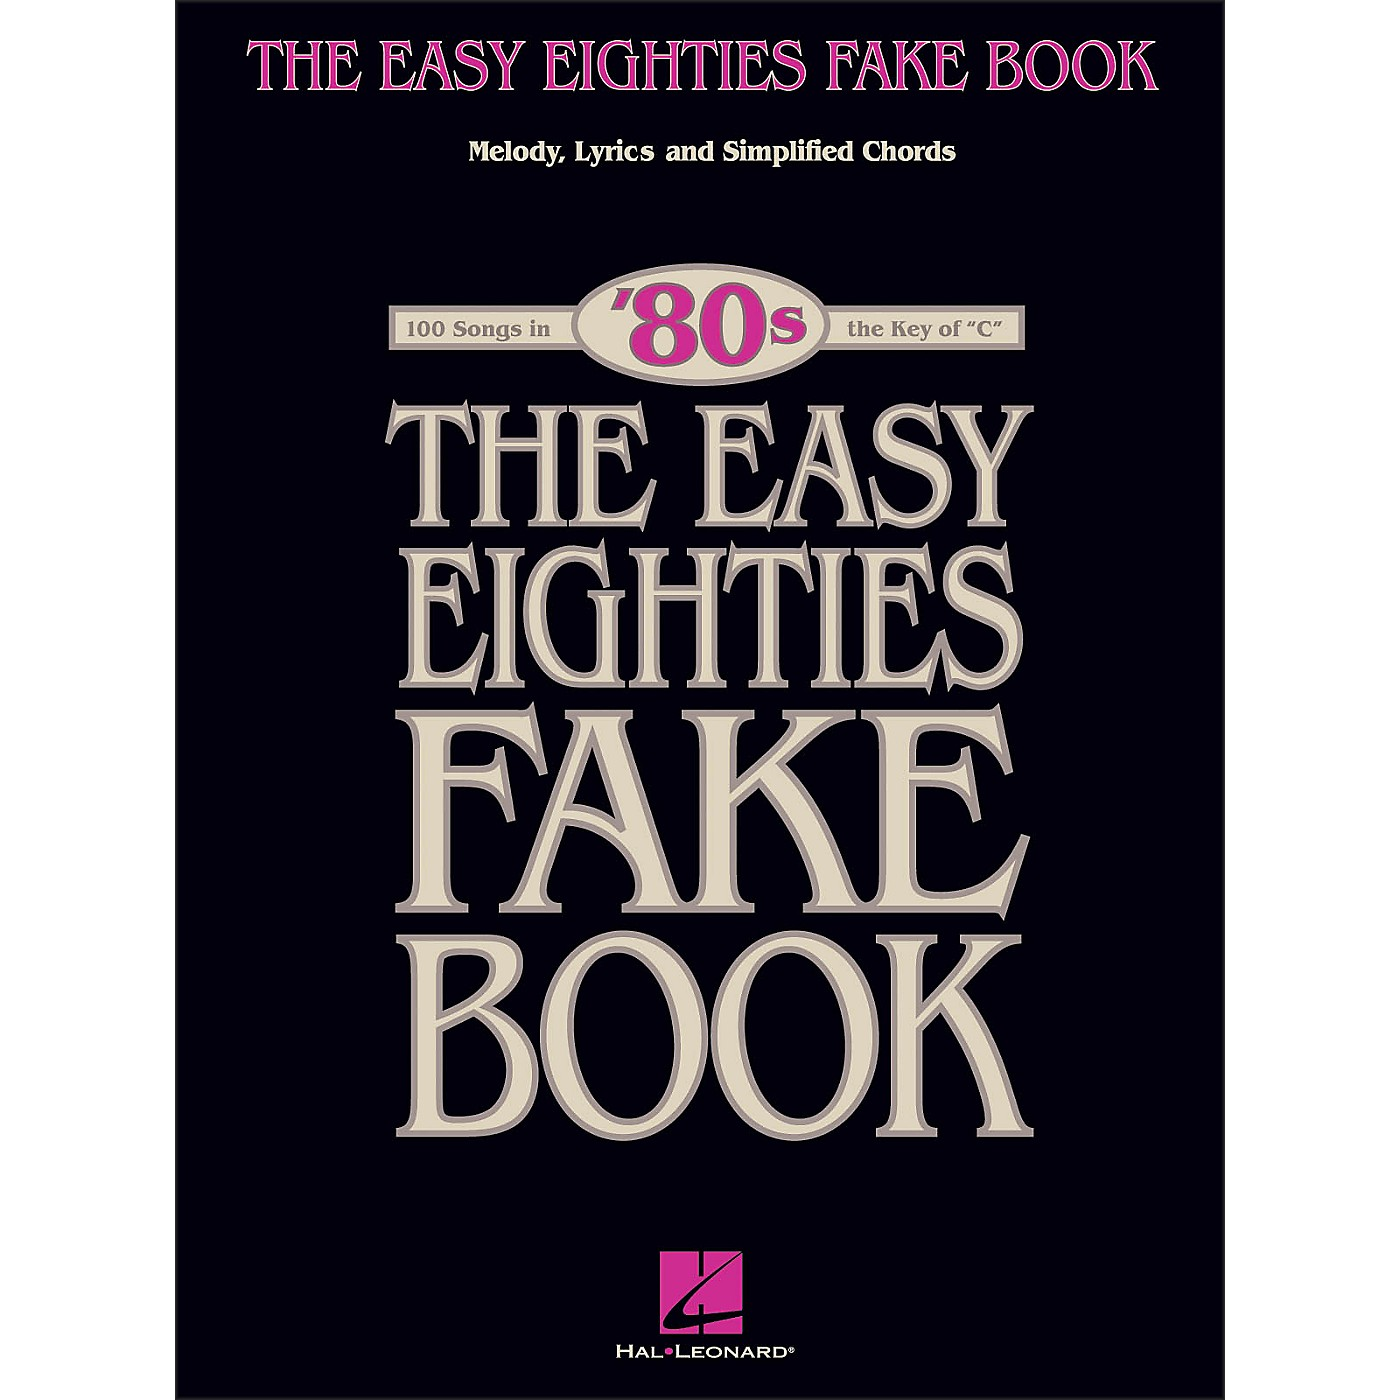 Hal Leonard The Easy Eighties Fake Book - Melody Lyrics & Simplified Chords for 100 Songs thumbnail